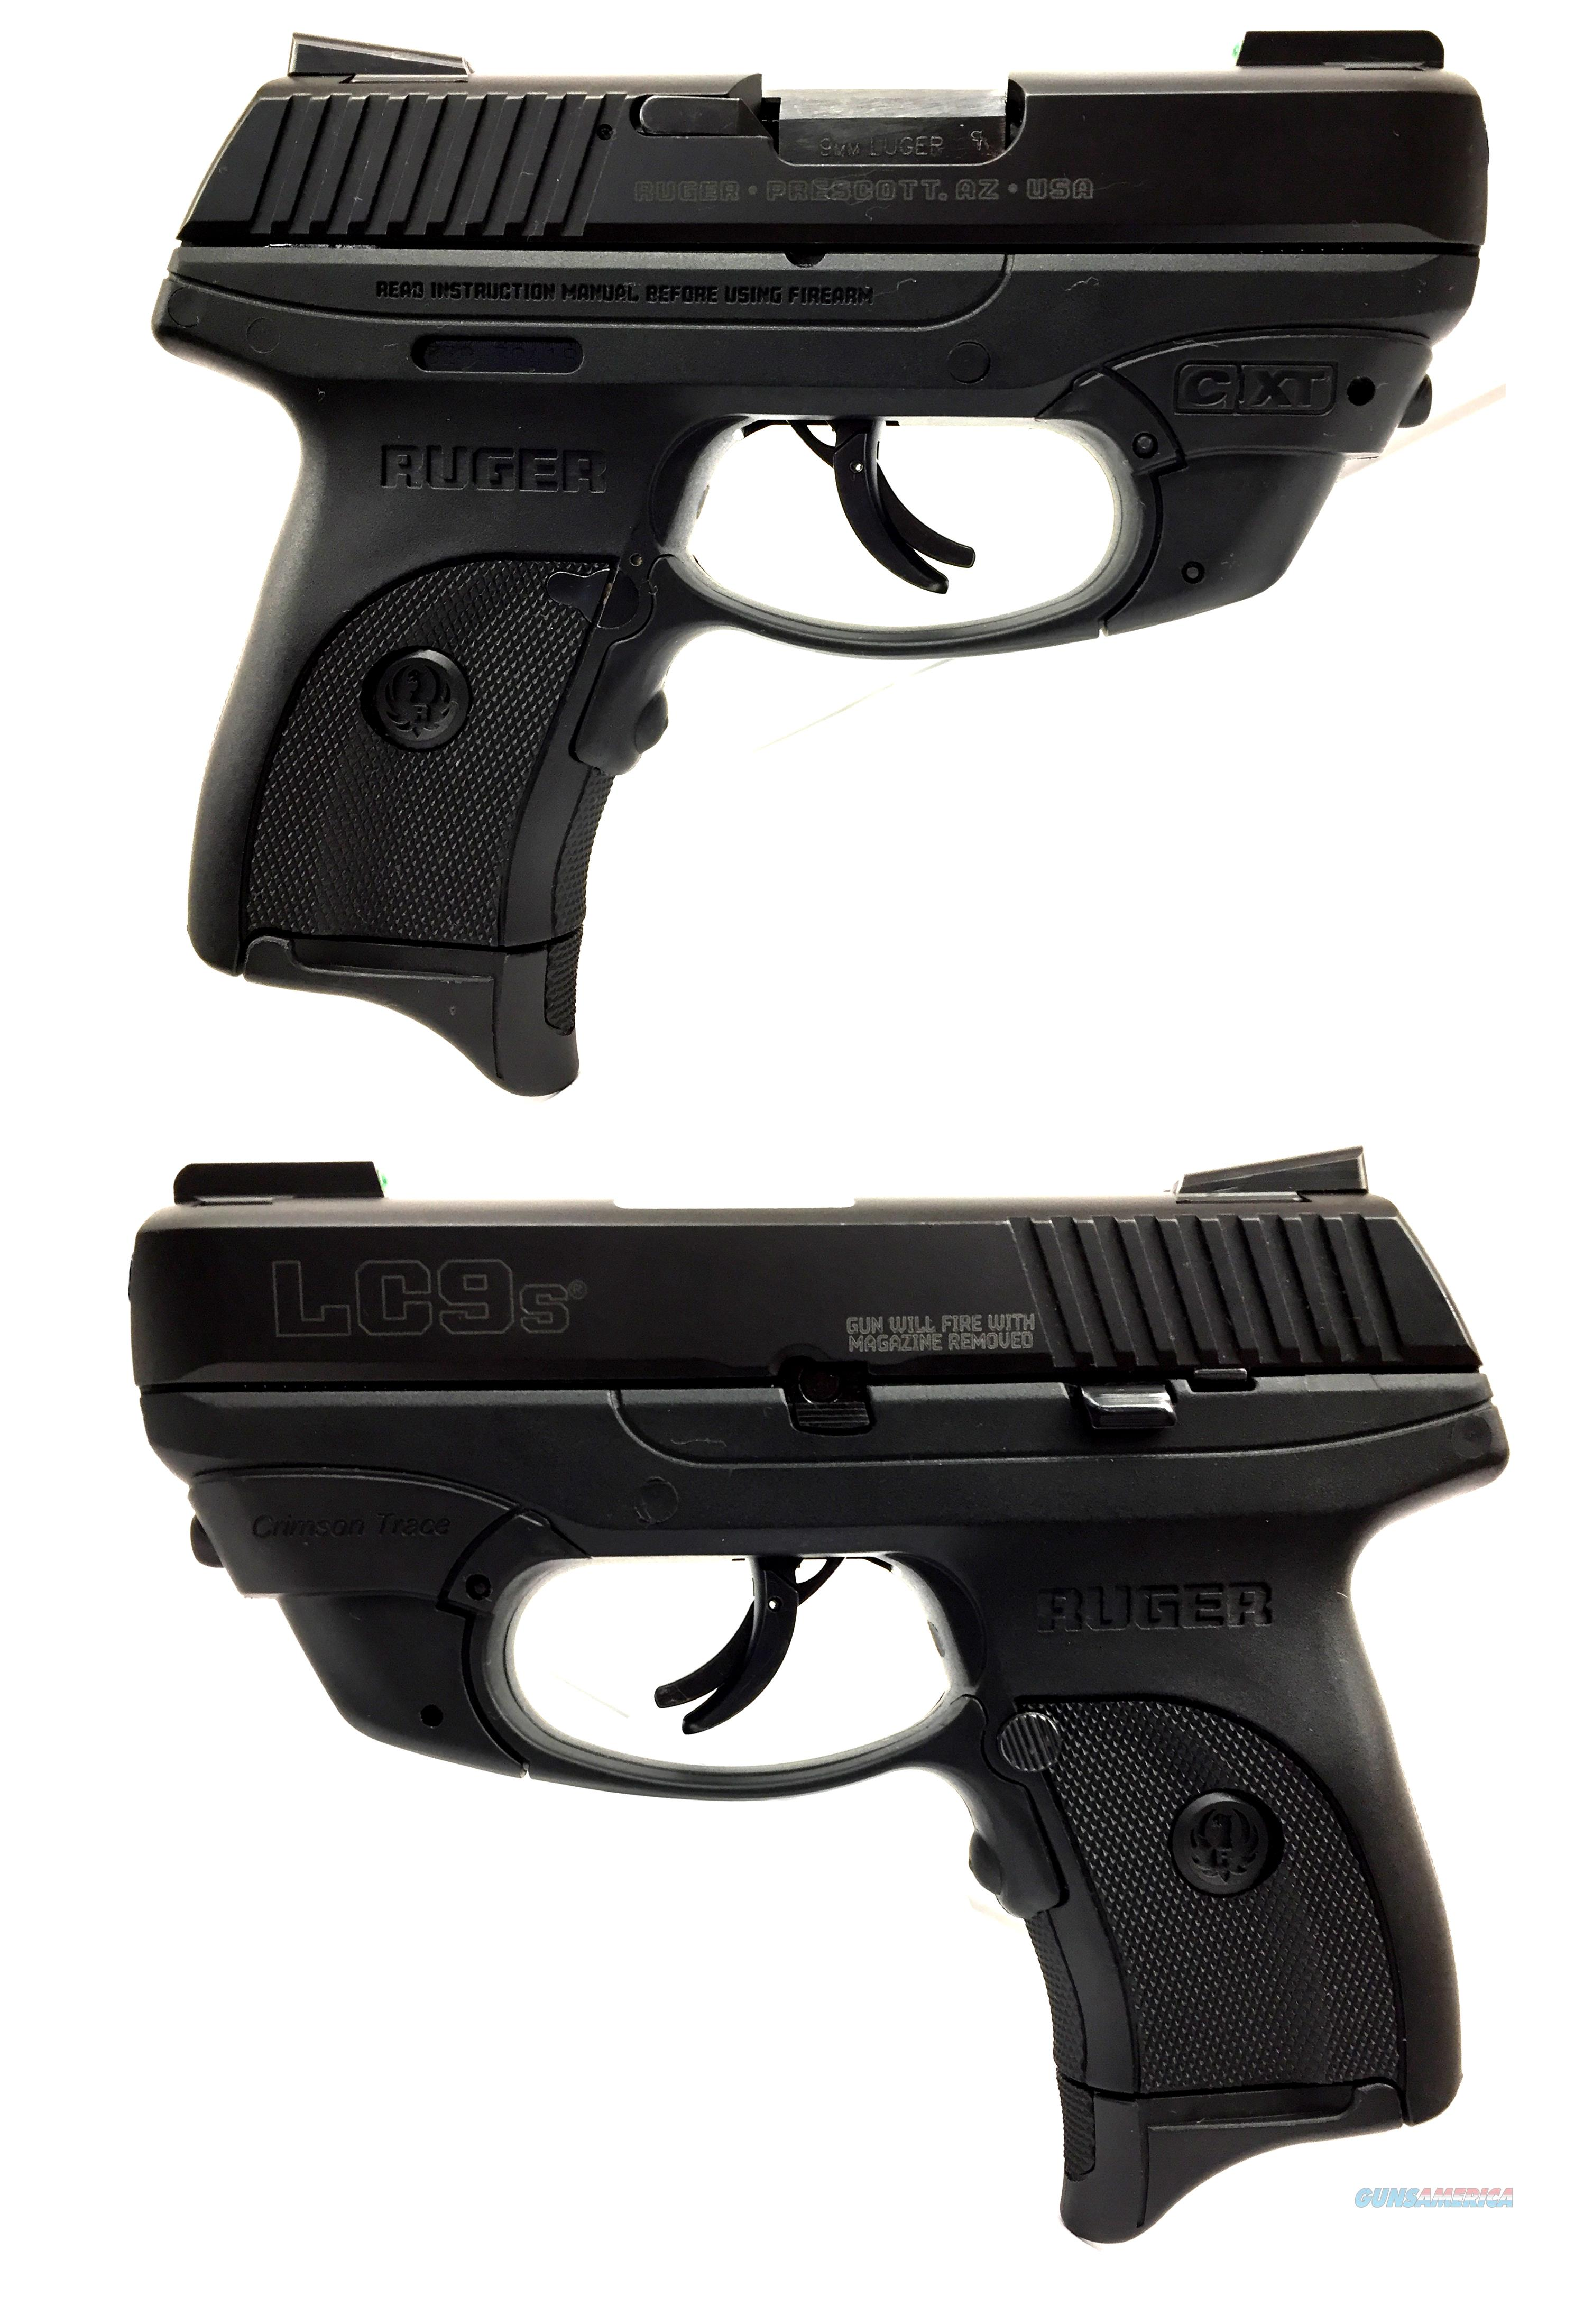 Ruger LC9s Pro W/ Extras  Guns > Pistols > Ruger Semi-Auto Pistols > LC9